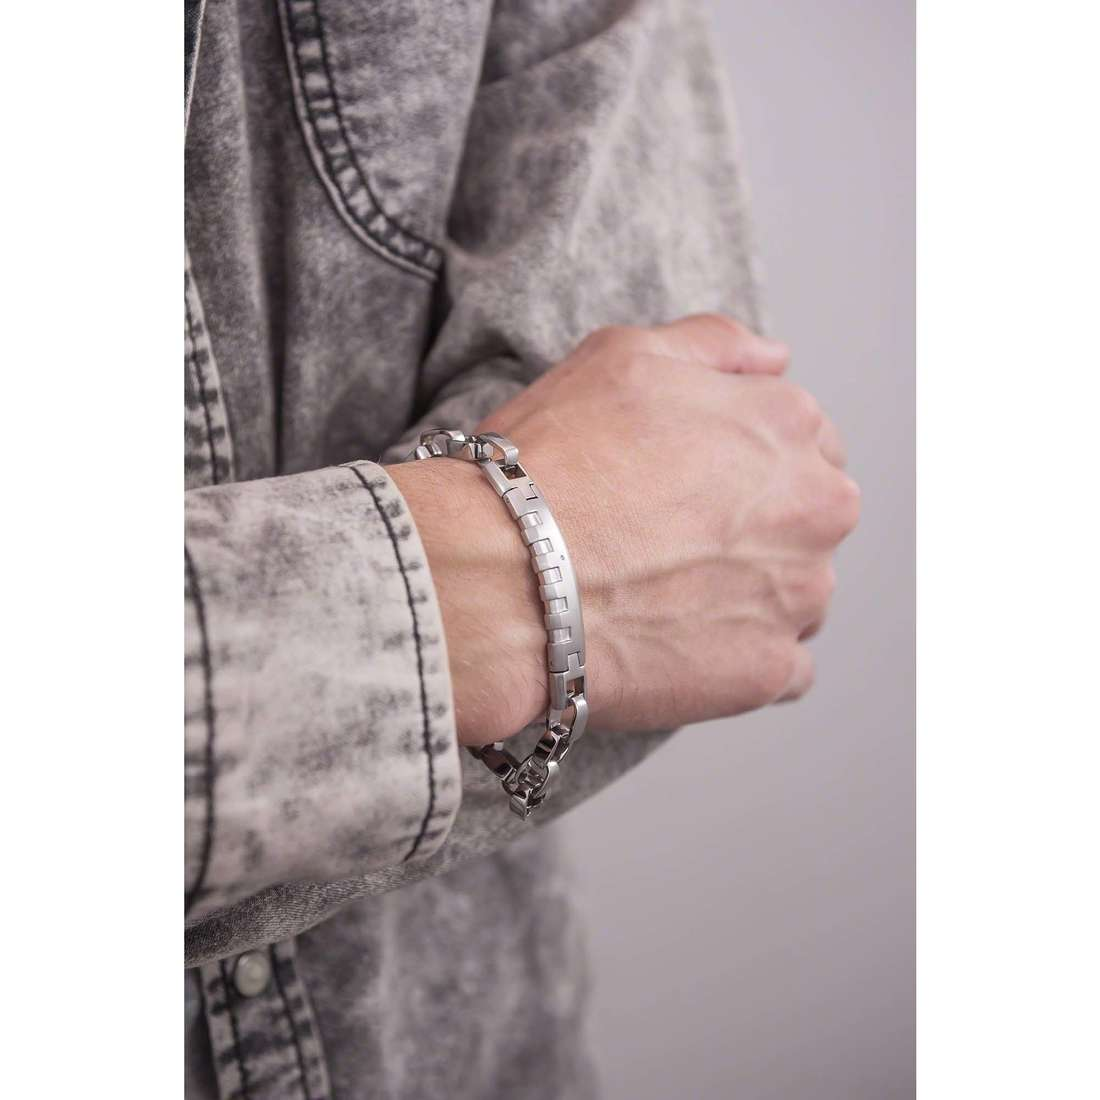 Bliss bracelets Speedway homme 20061544 indosso